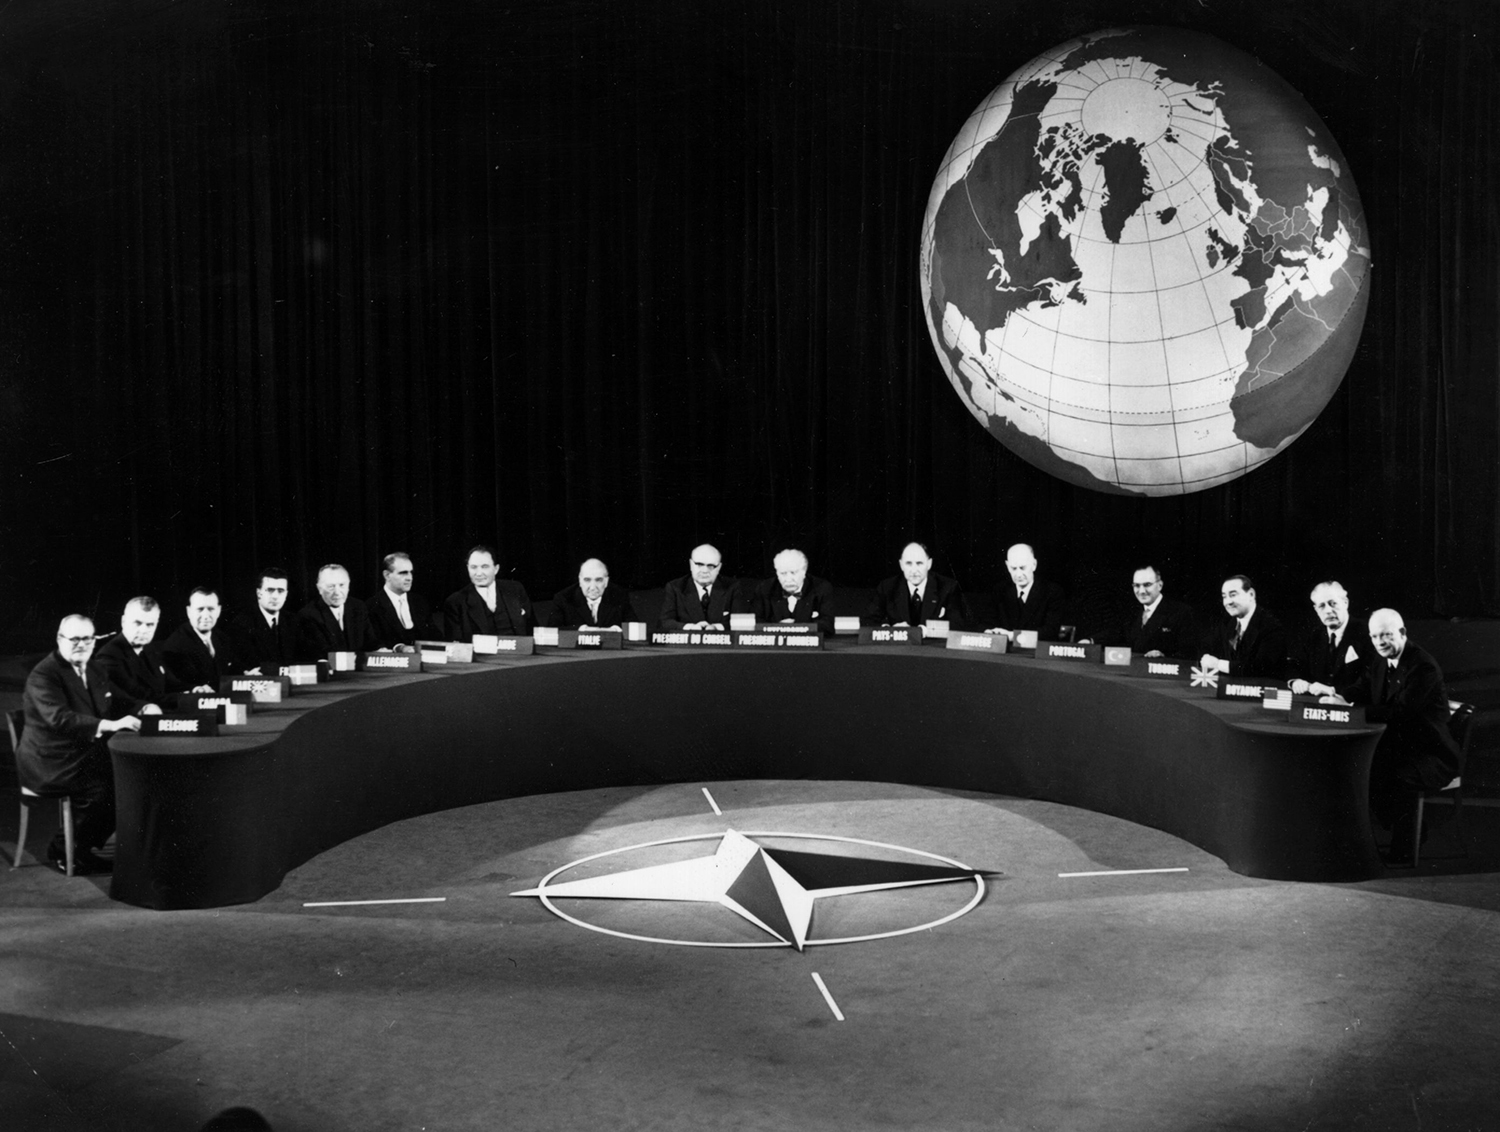 Delegates at the NATO conference at Paris on Dec. 19, 1957.